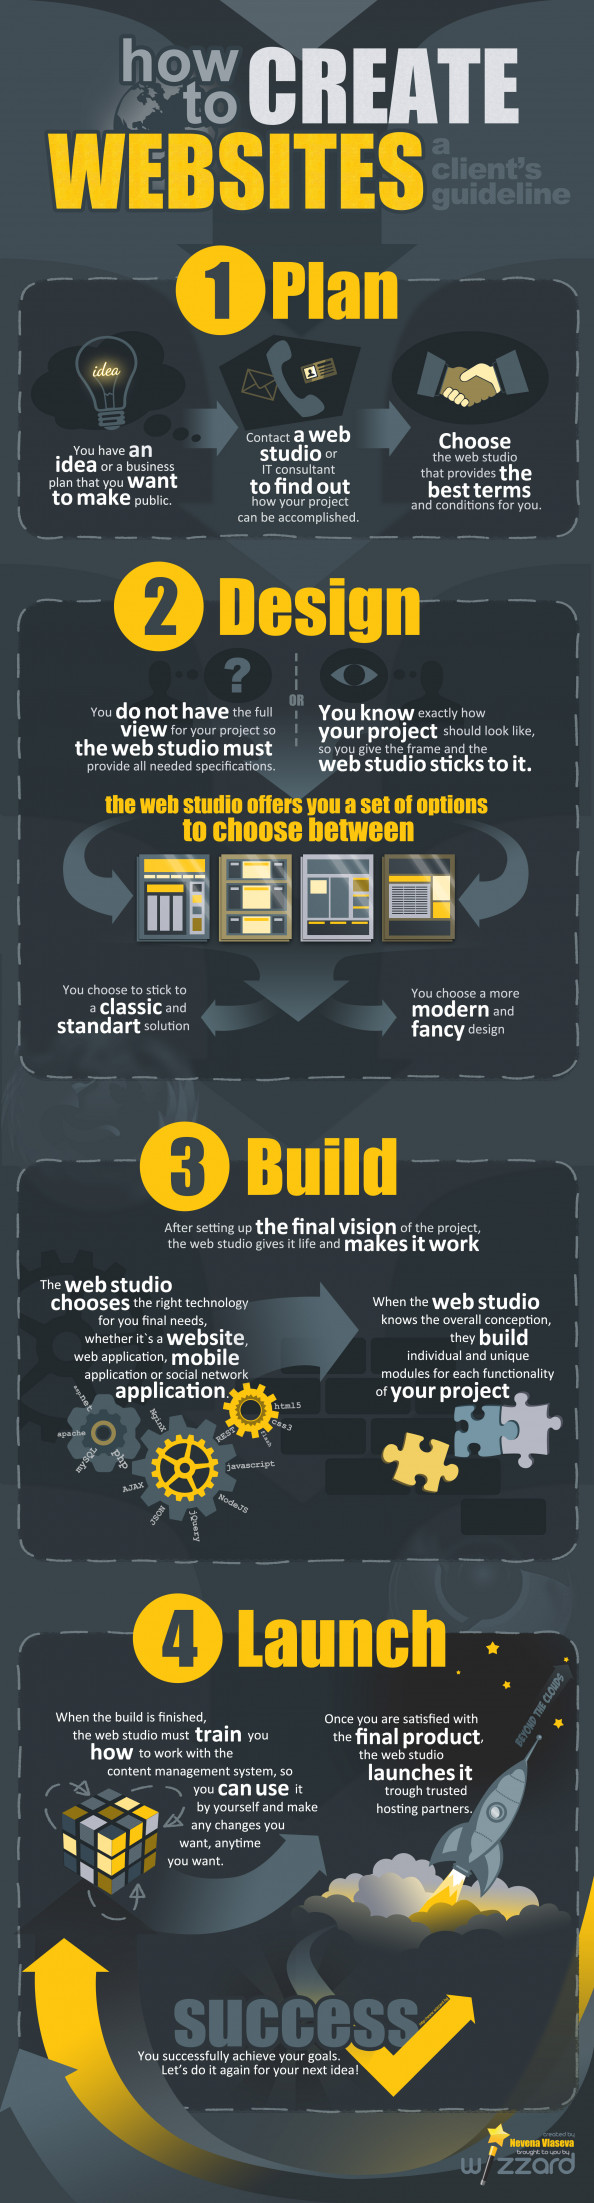 How to create websites Infographic